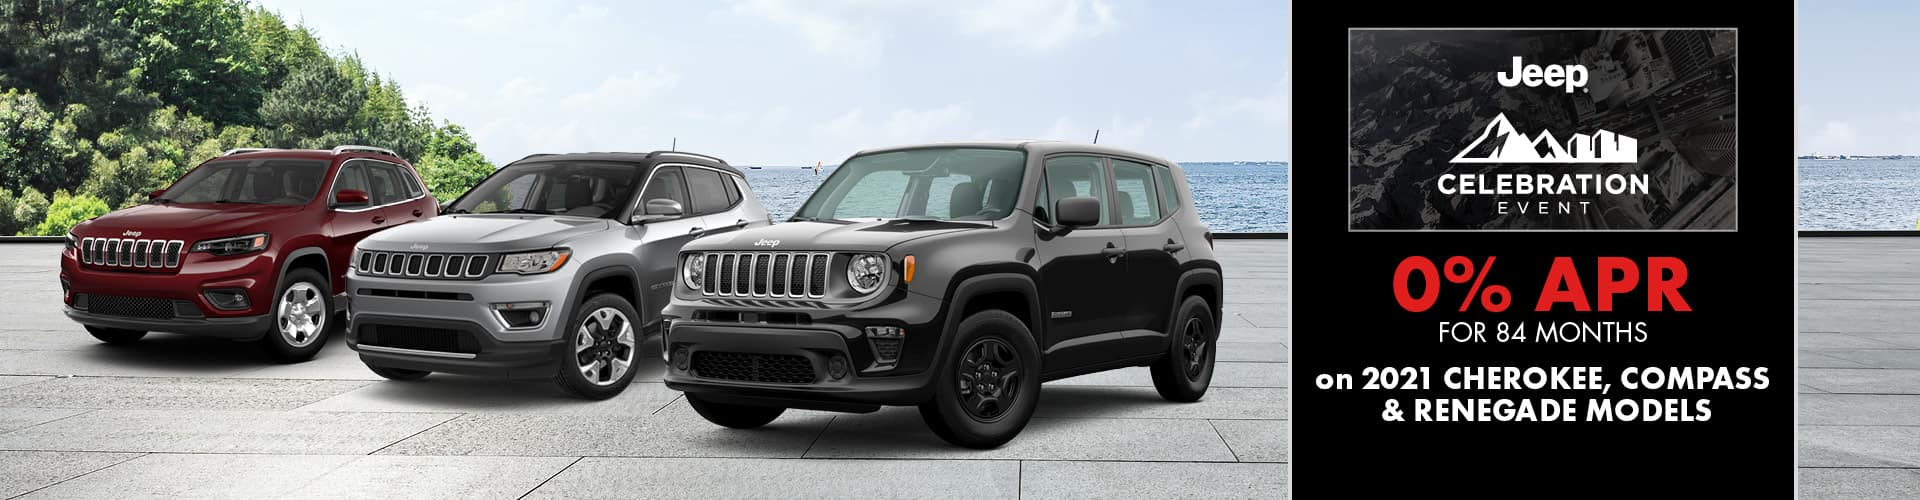 0% for 84 months on 2021 for Cherokee, Compass & Renegade models